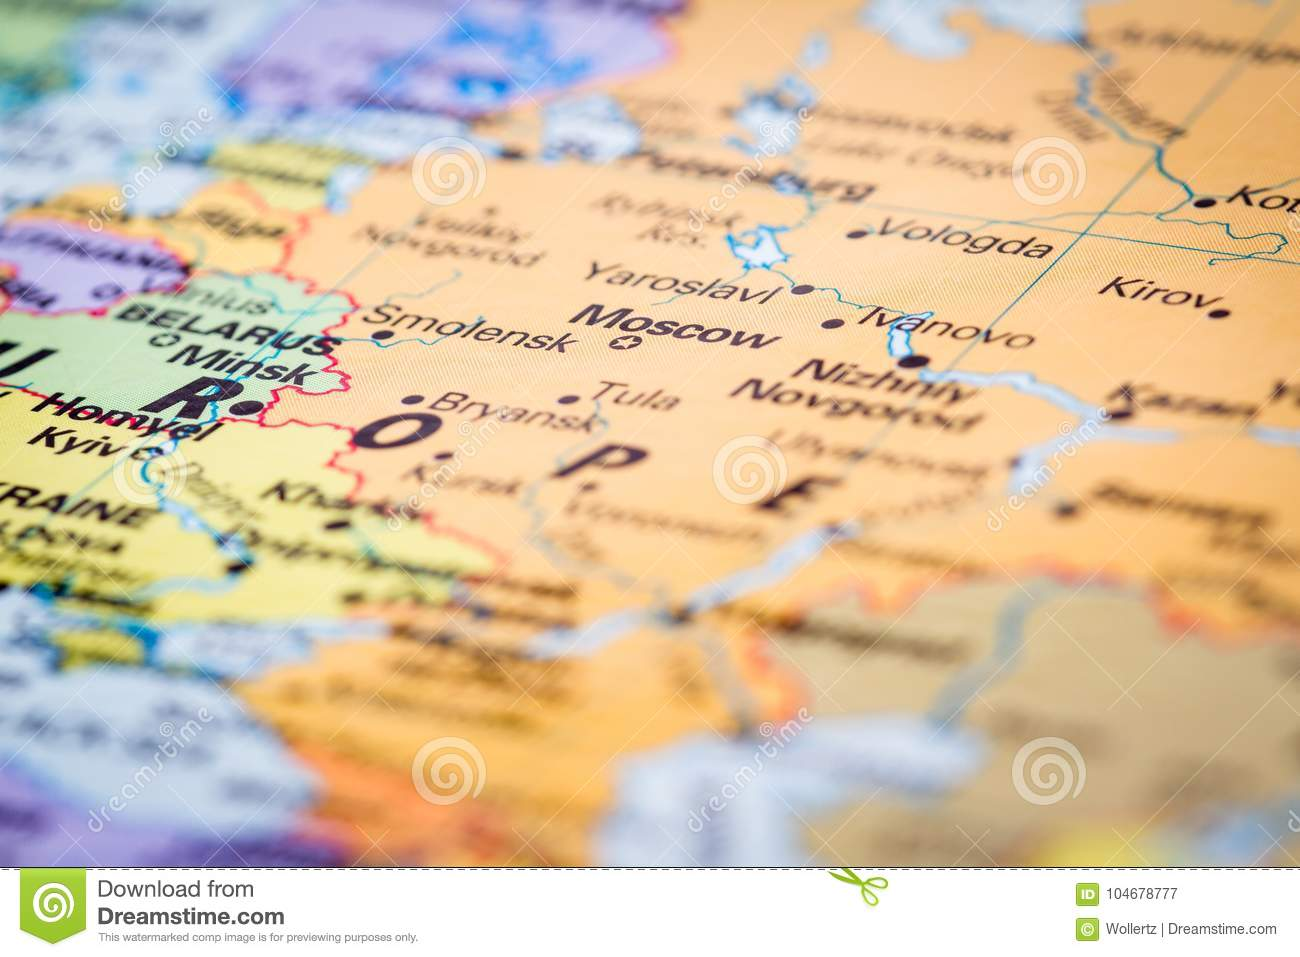 Moscow Russia on a map stock image. Image of region - 104678777